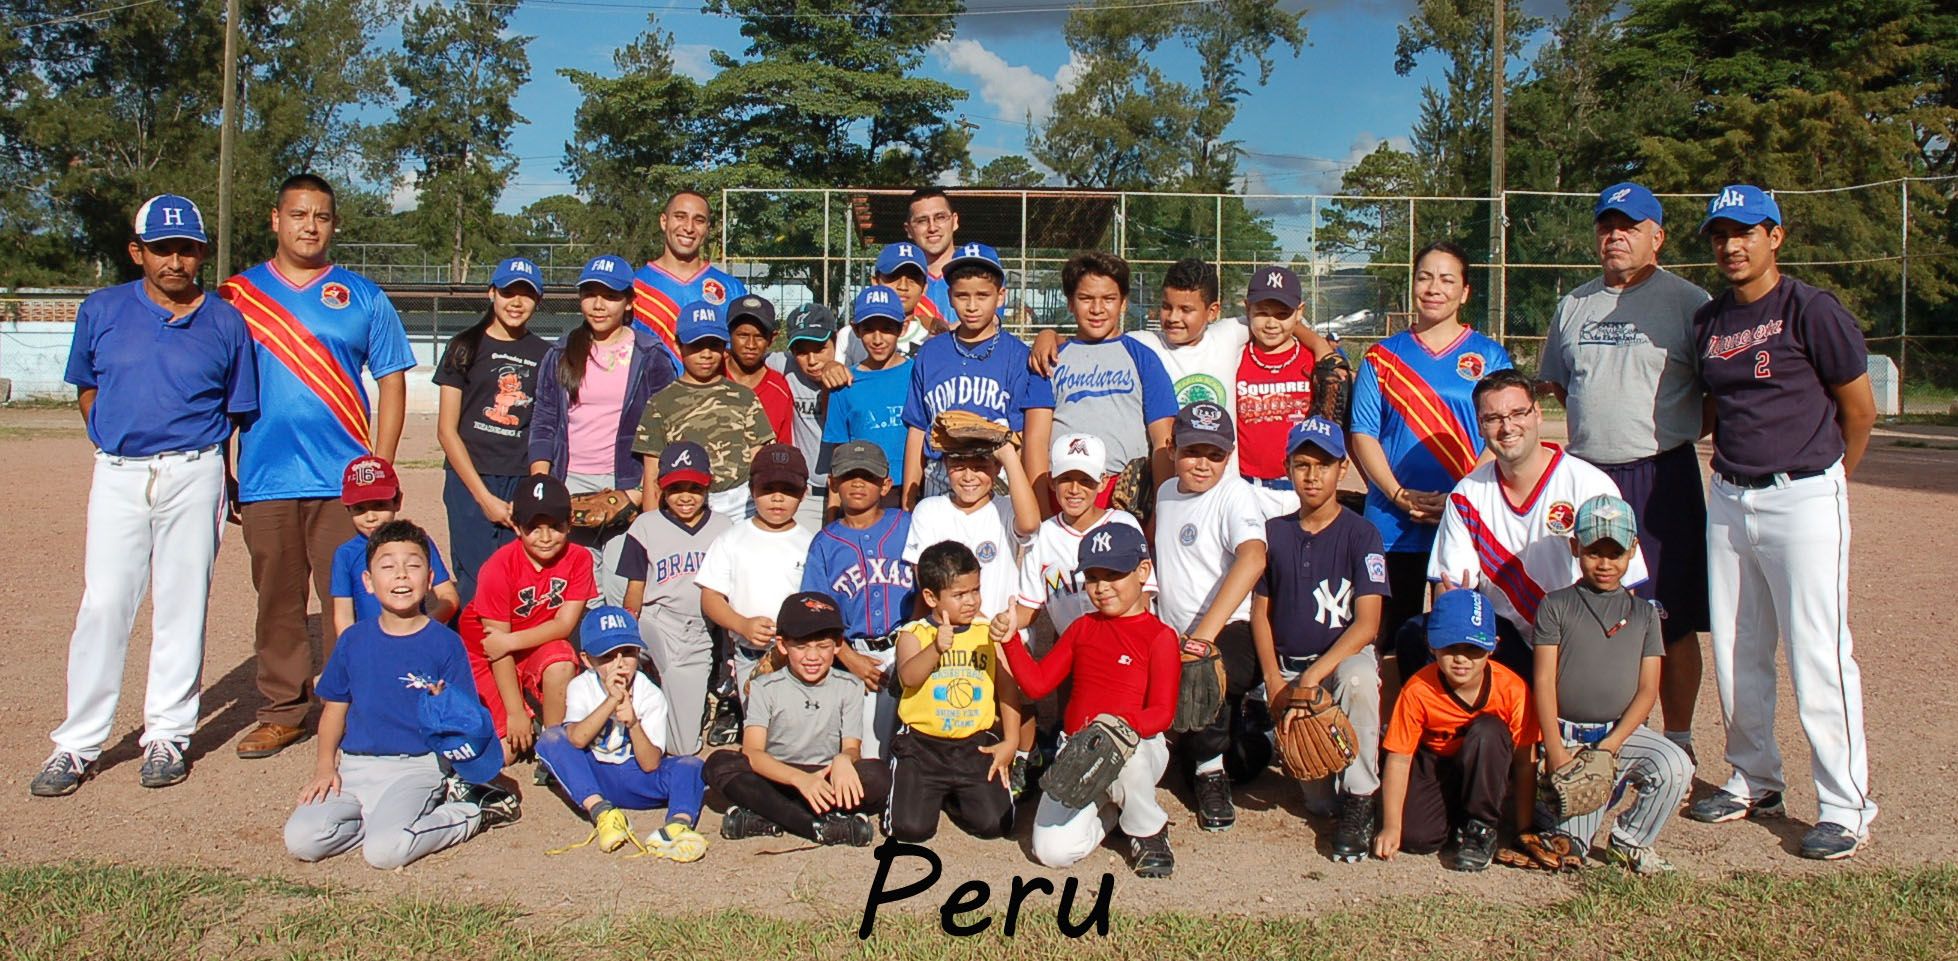 Peru Little League